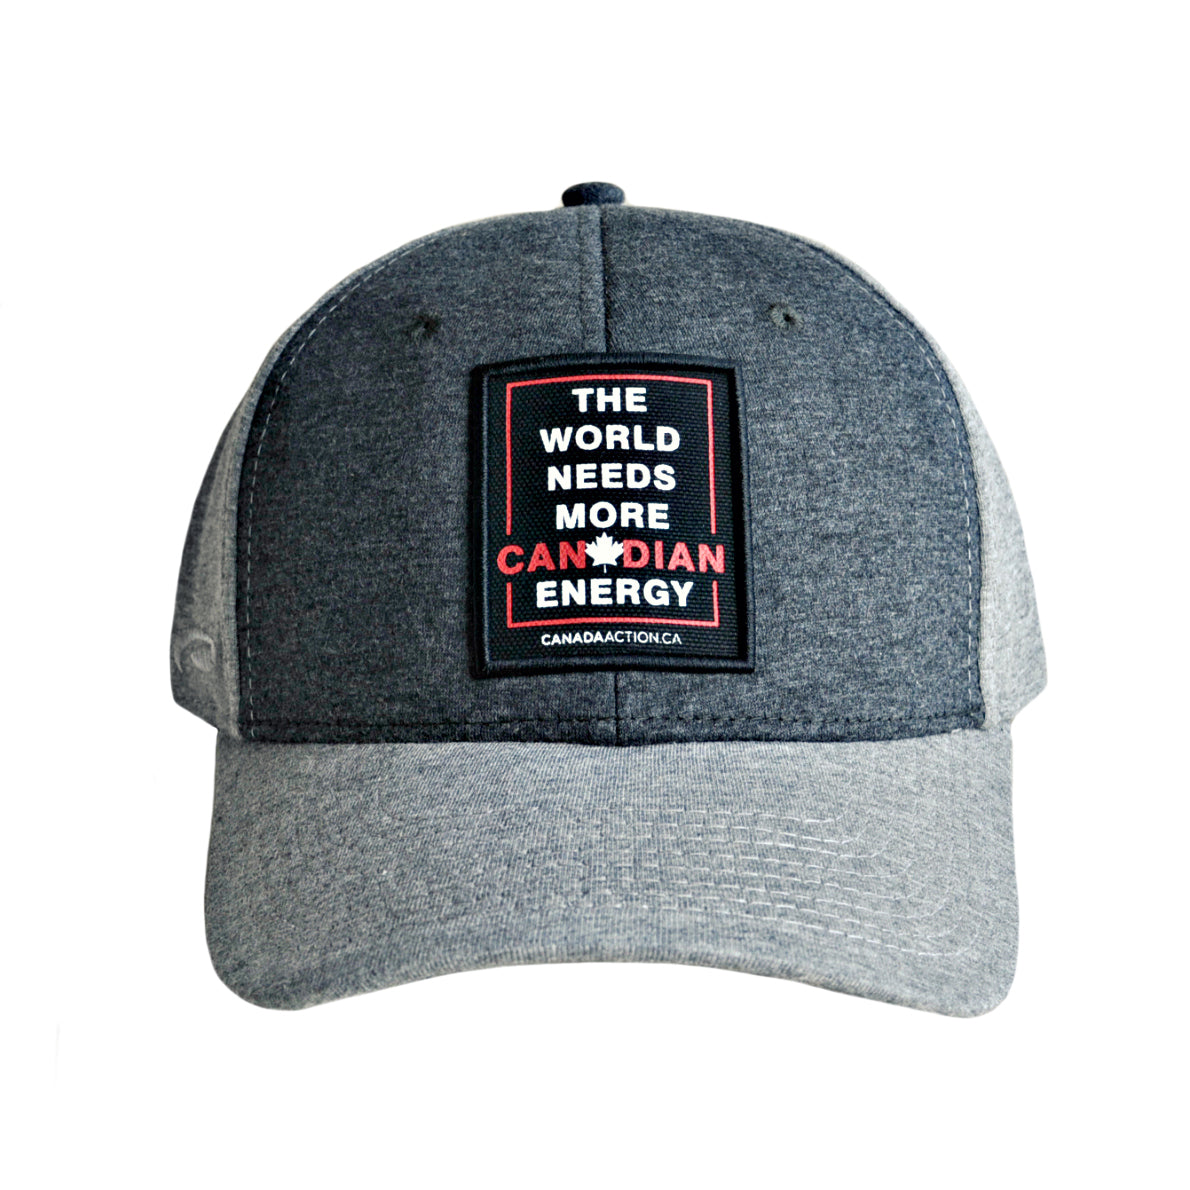 'The World Needs More Canadian Energy' Two Tone Snapback Hat